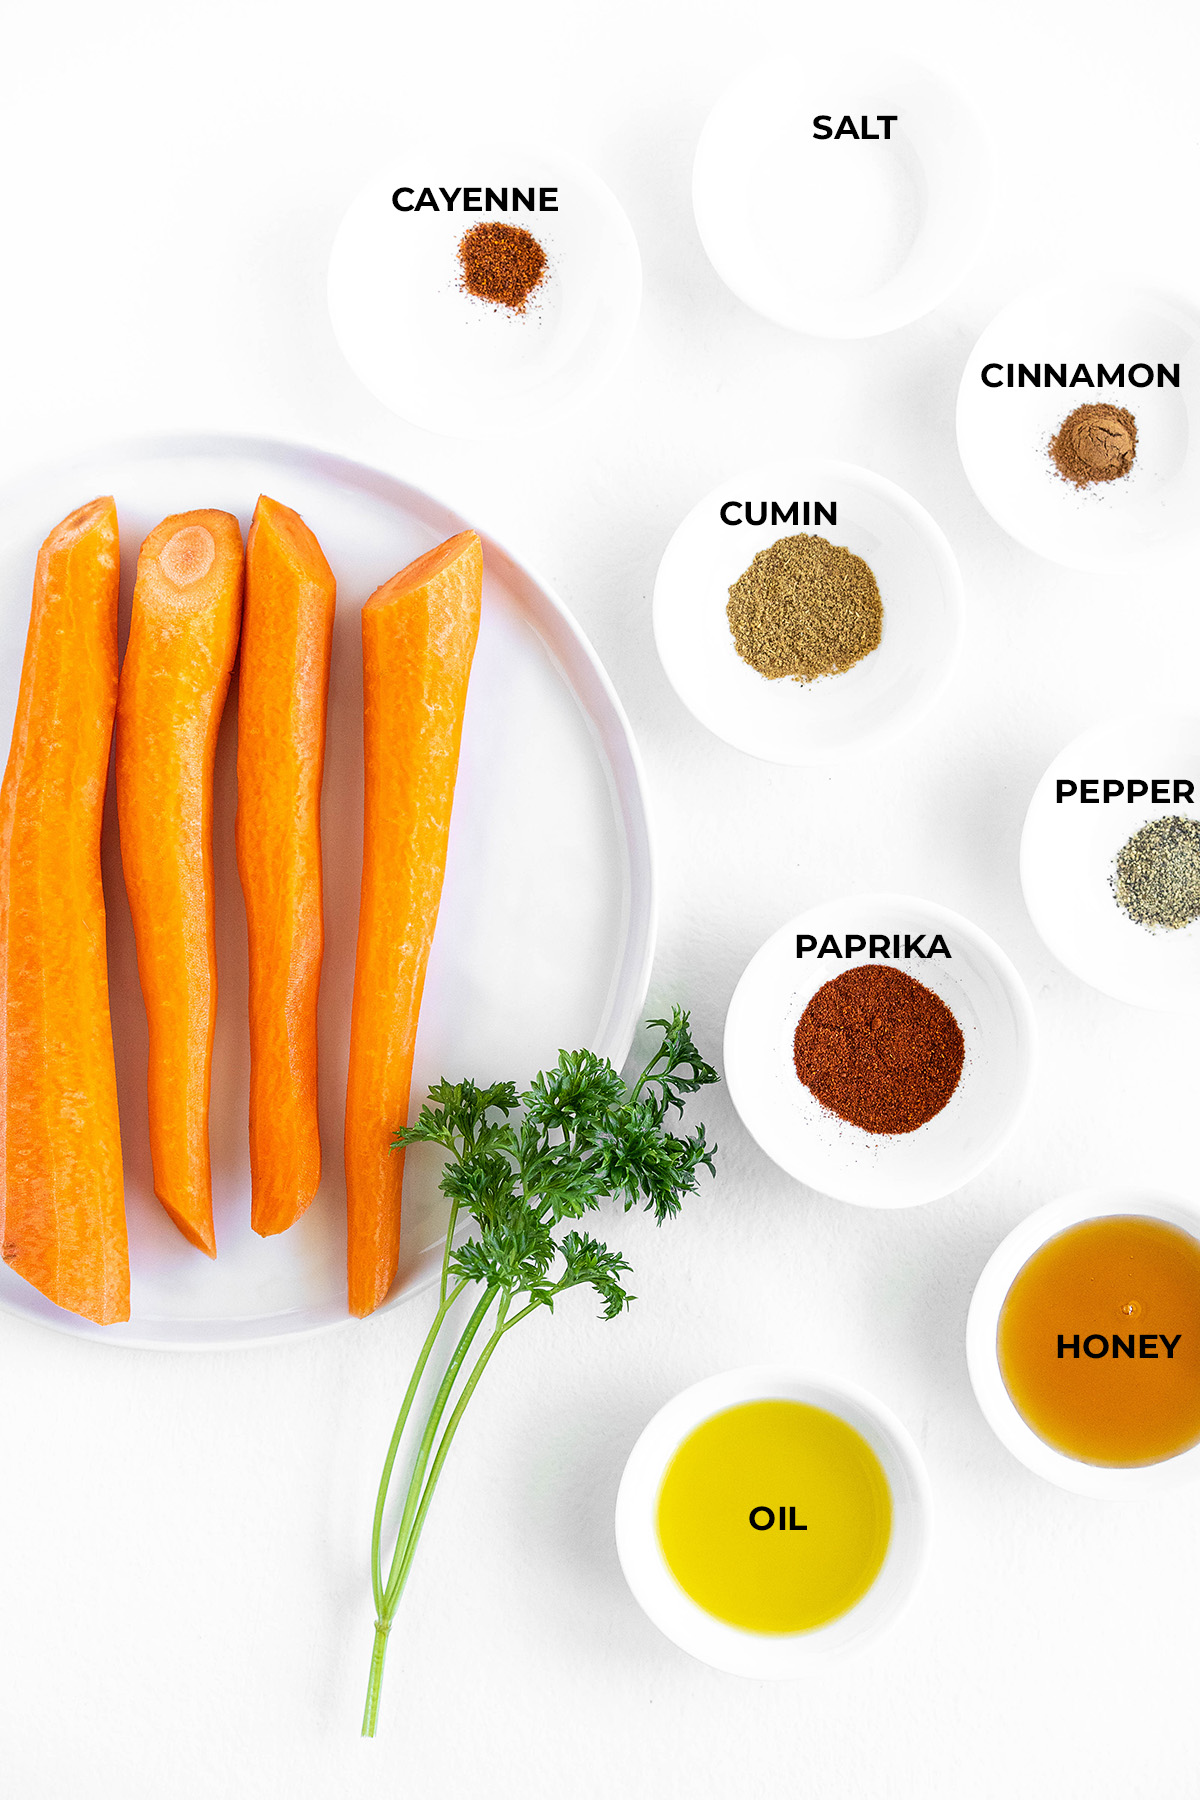 Ingredients for glazed carrots spread out in separate dishes